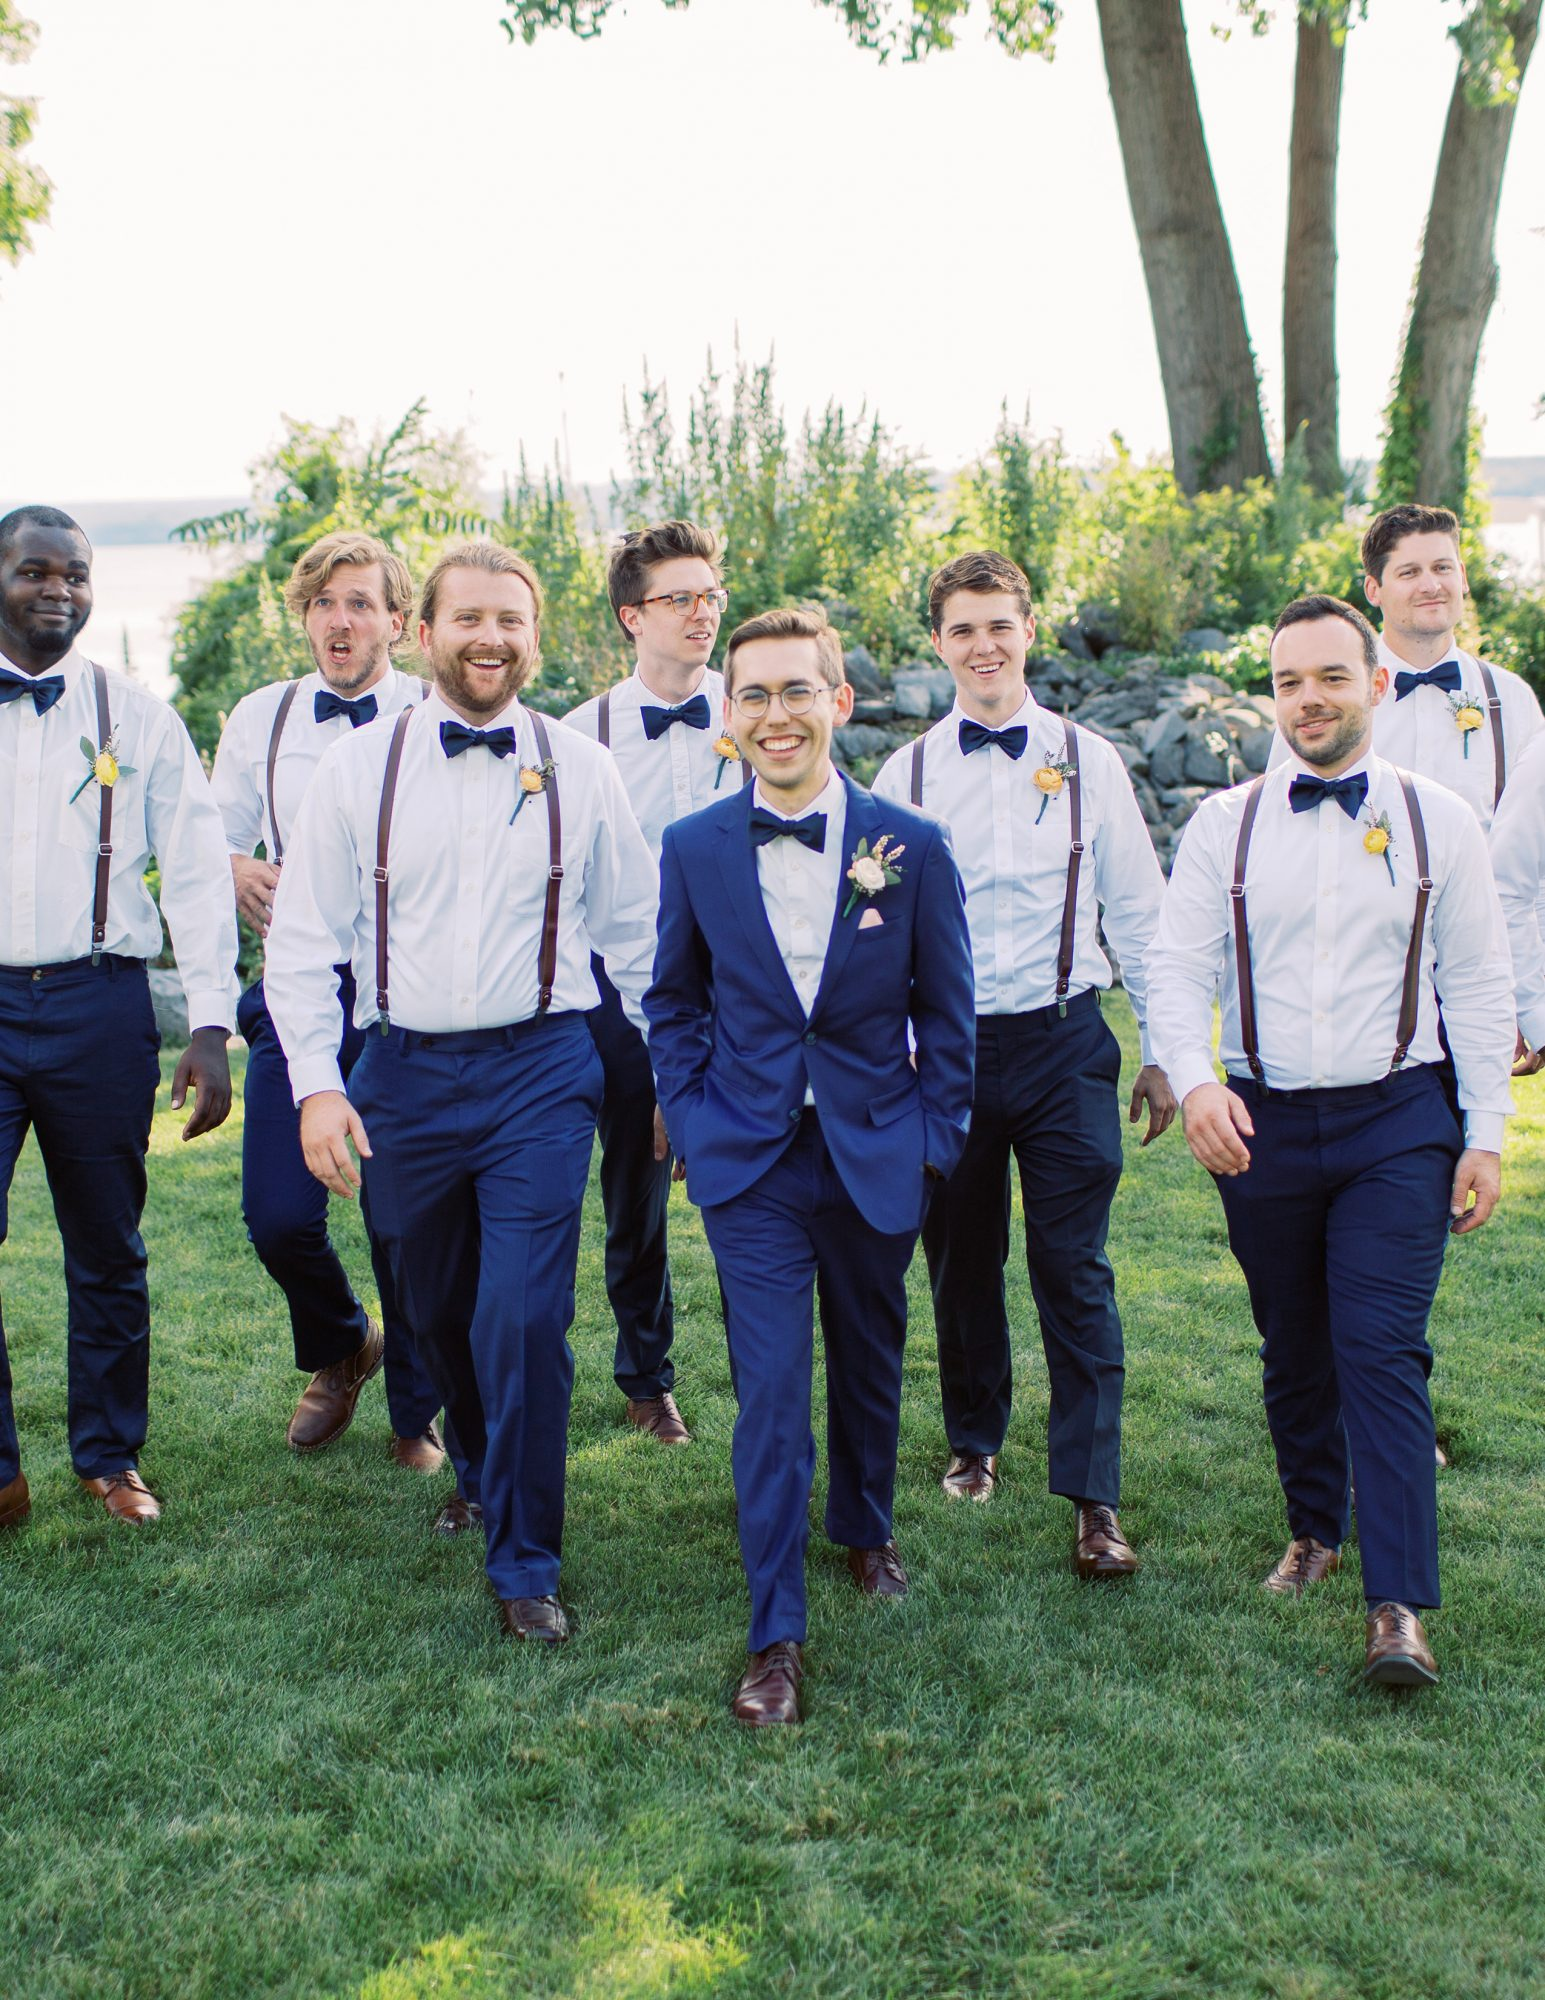 charlene jeremy wedding groom and groomsmen portrait